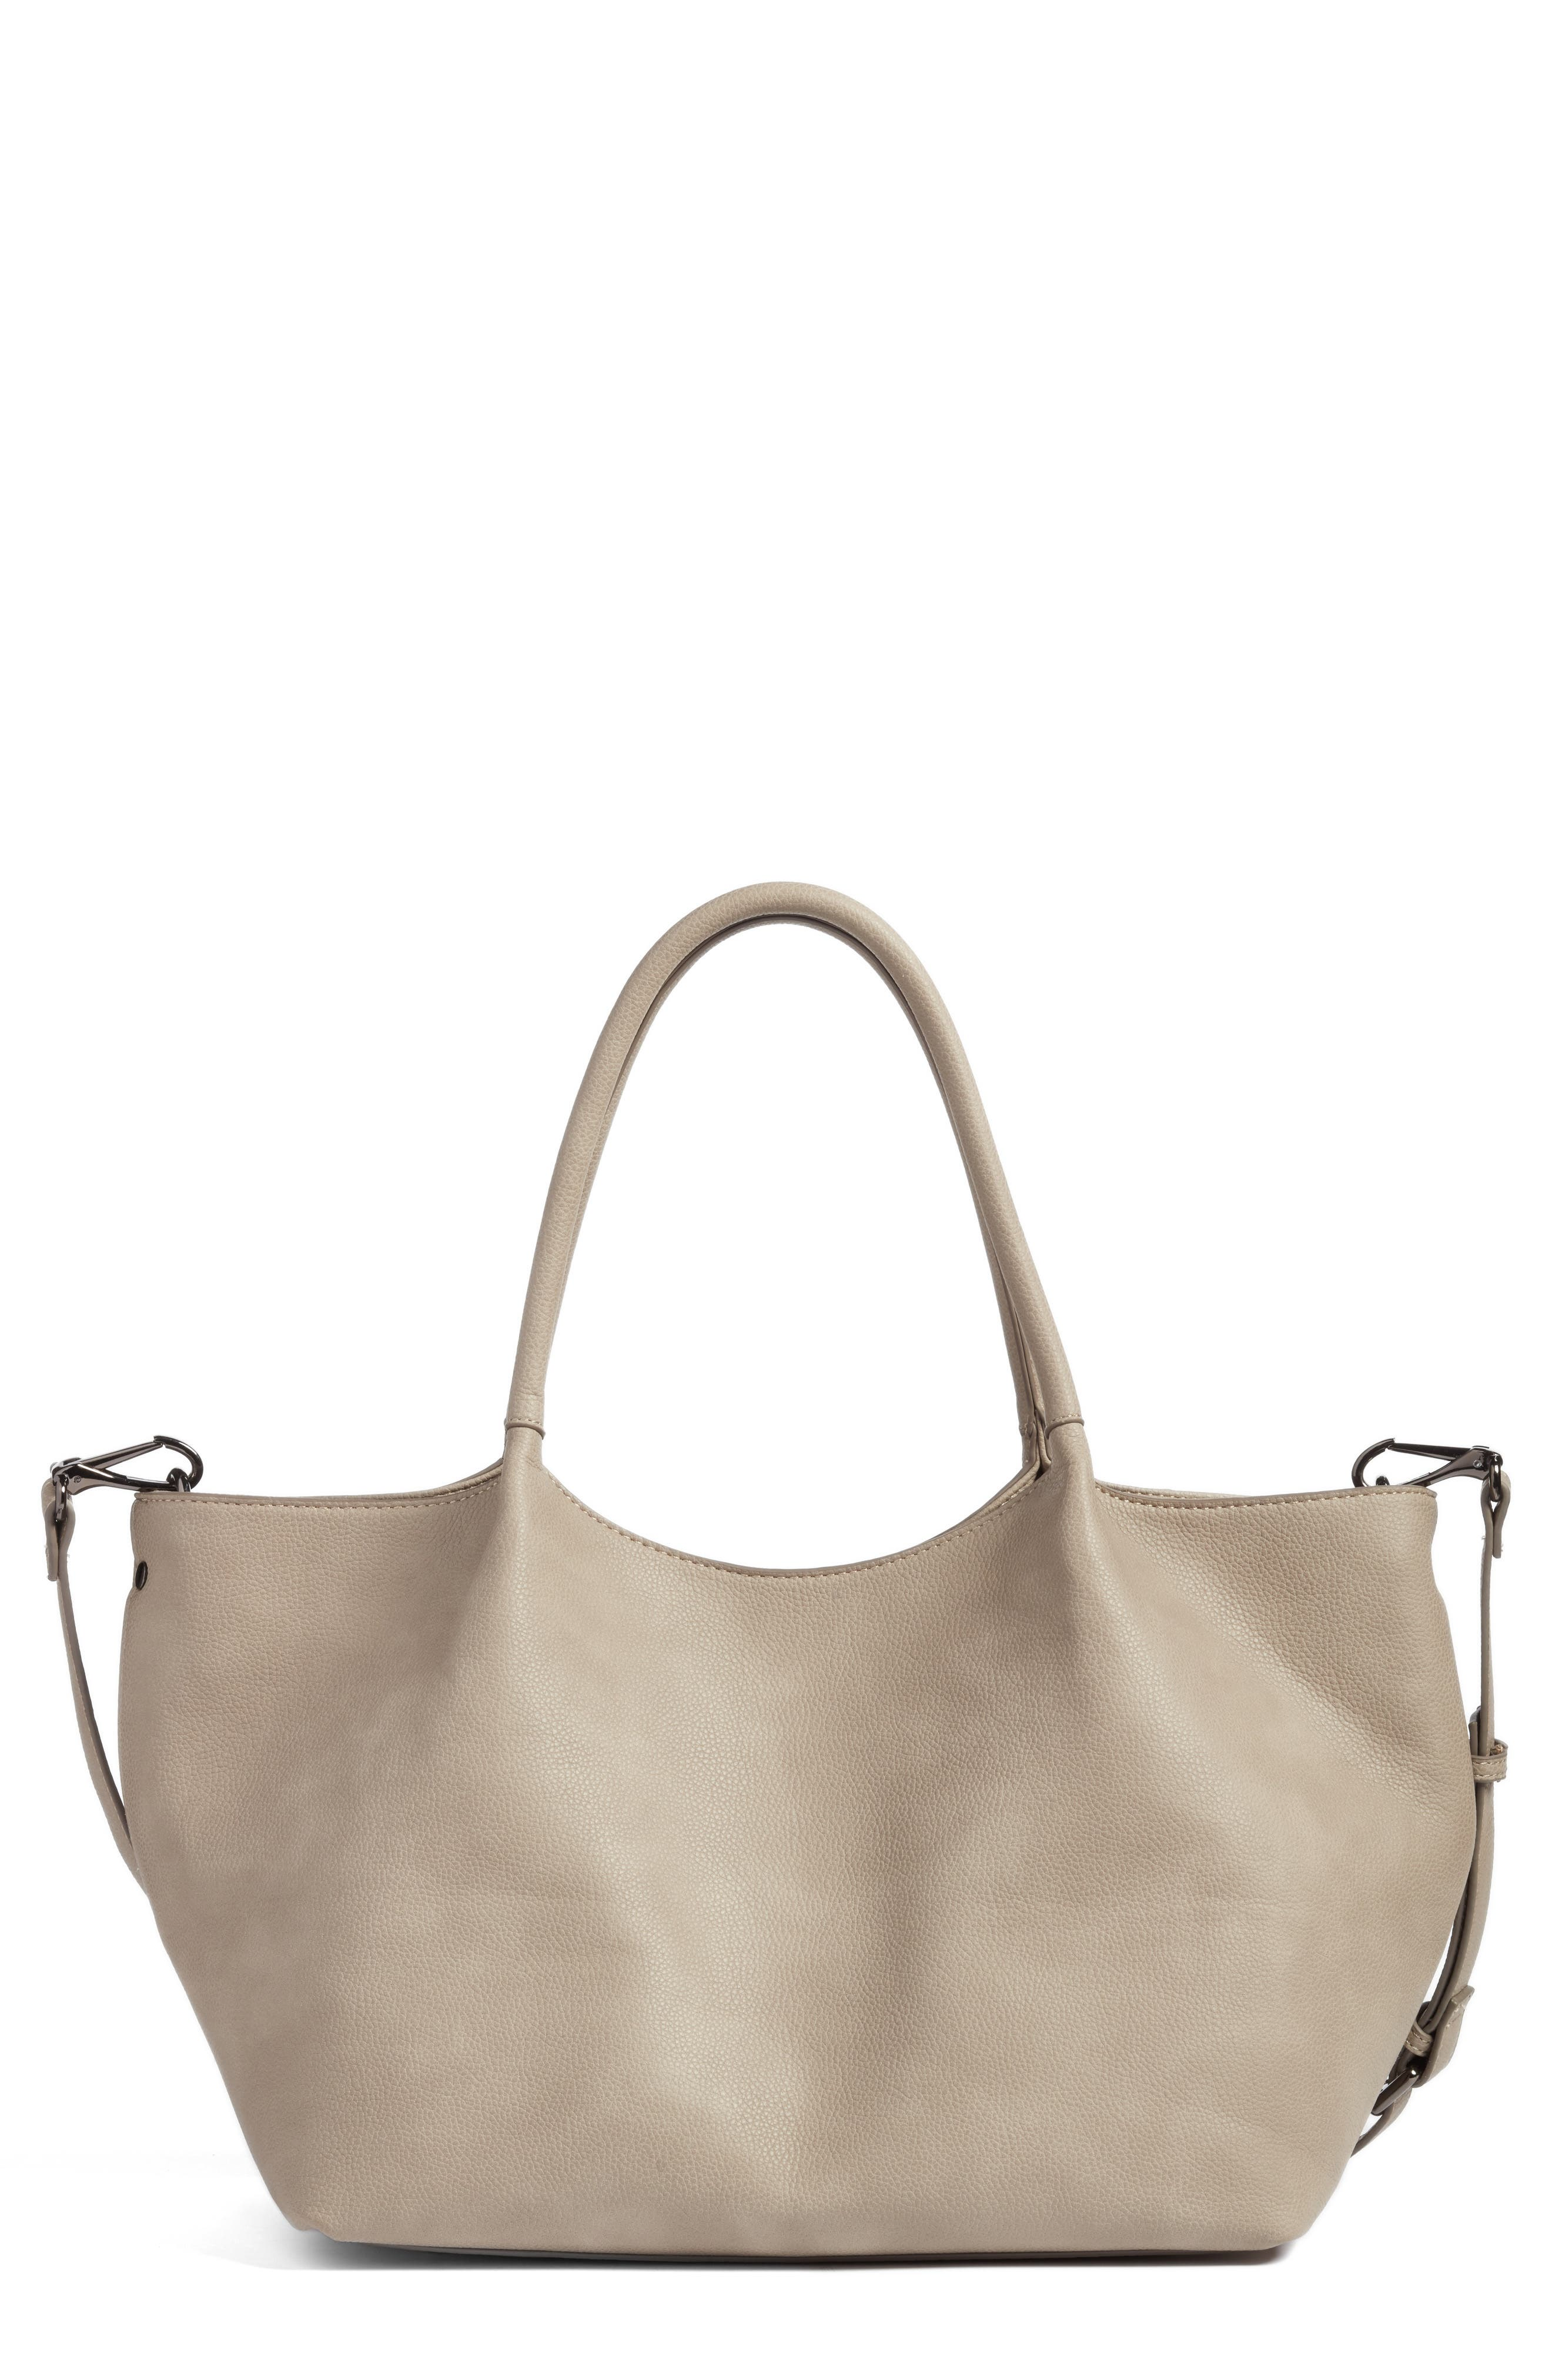 Alternate Image 1 Selected - Sole Society Cindy Faux Leather Convertible Tote